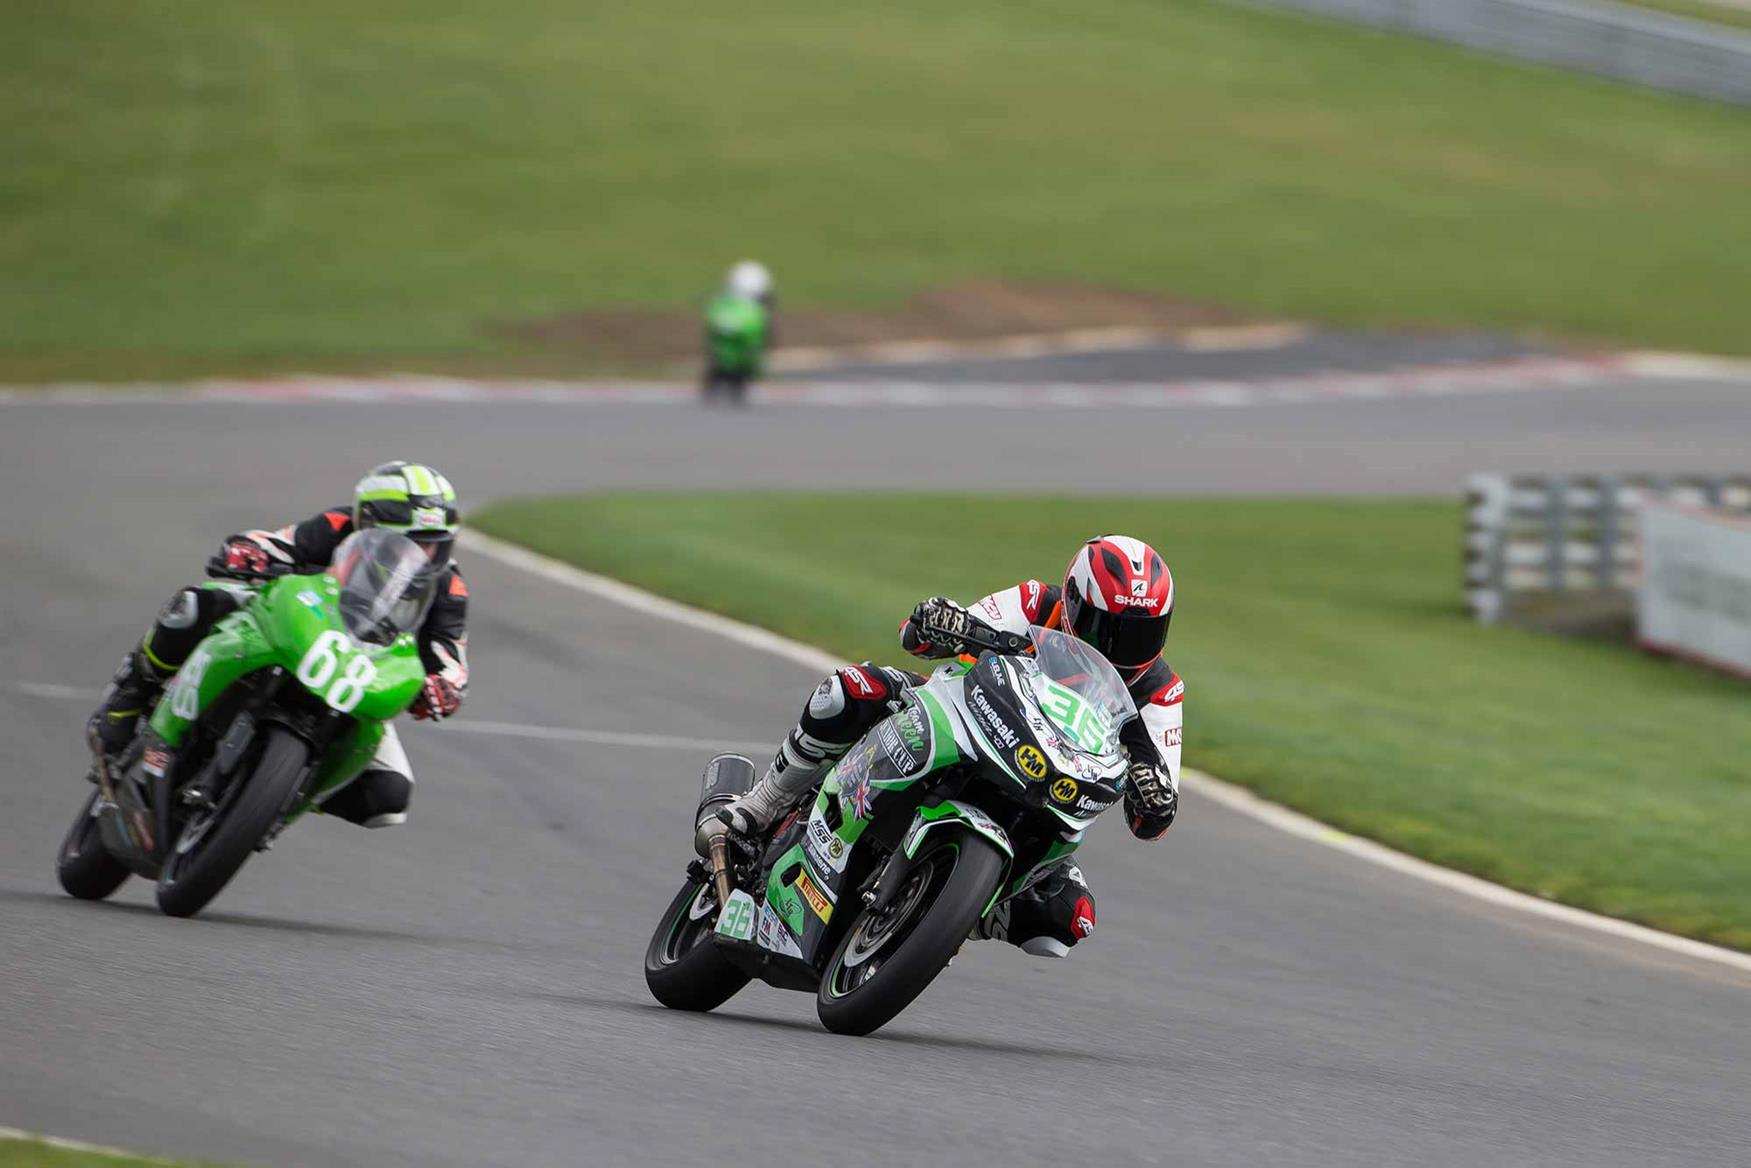 Cornering left on the Kawasaki Ninja 400